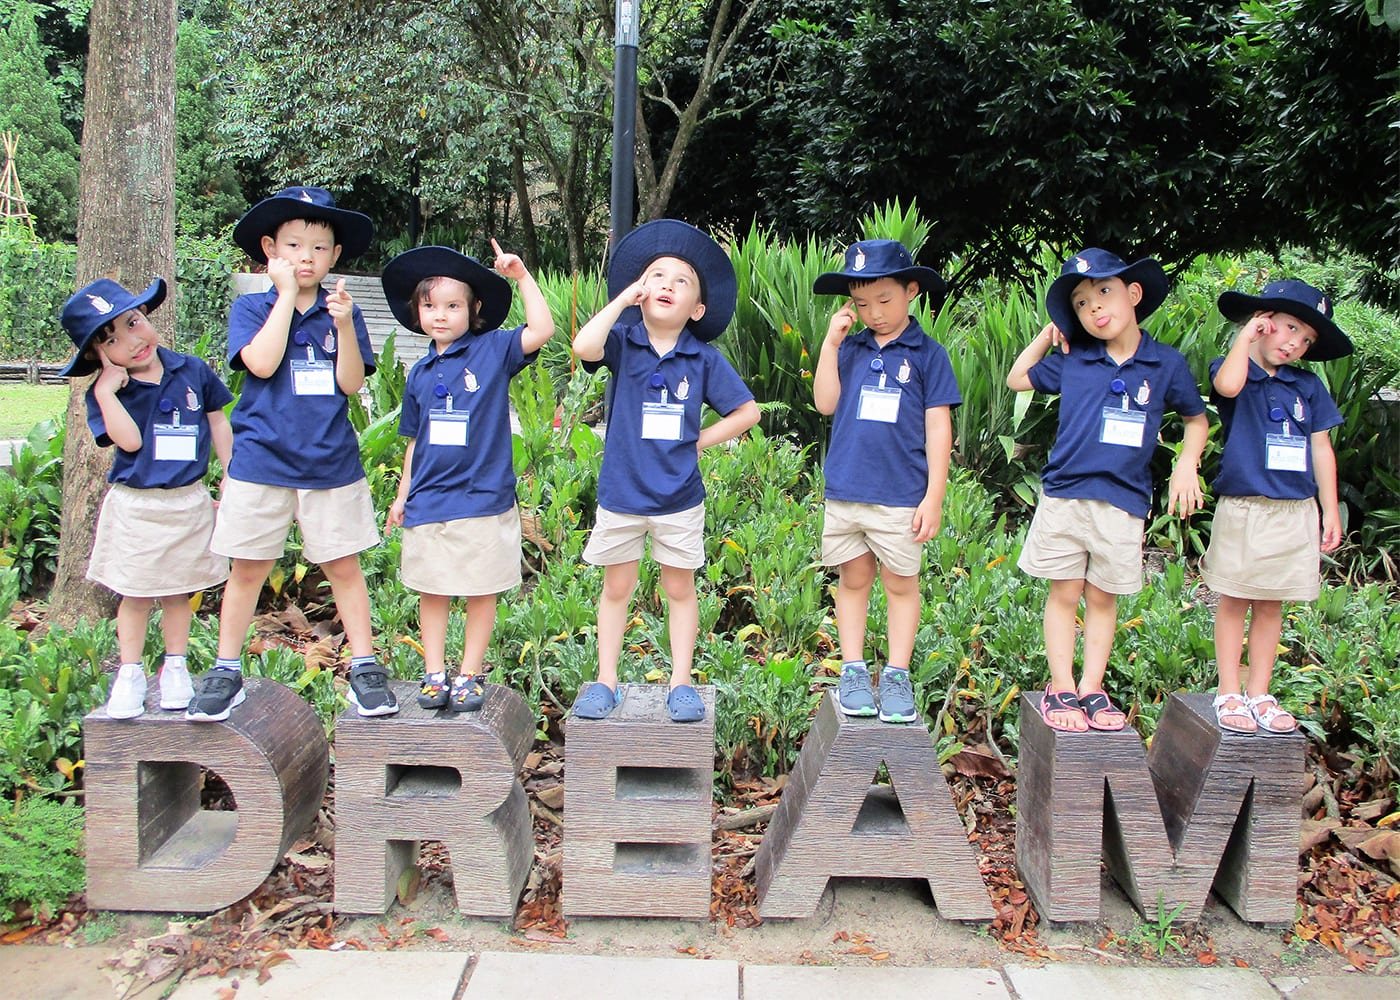 Repton Schoolhouse Bukit Timah Open Day